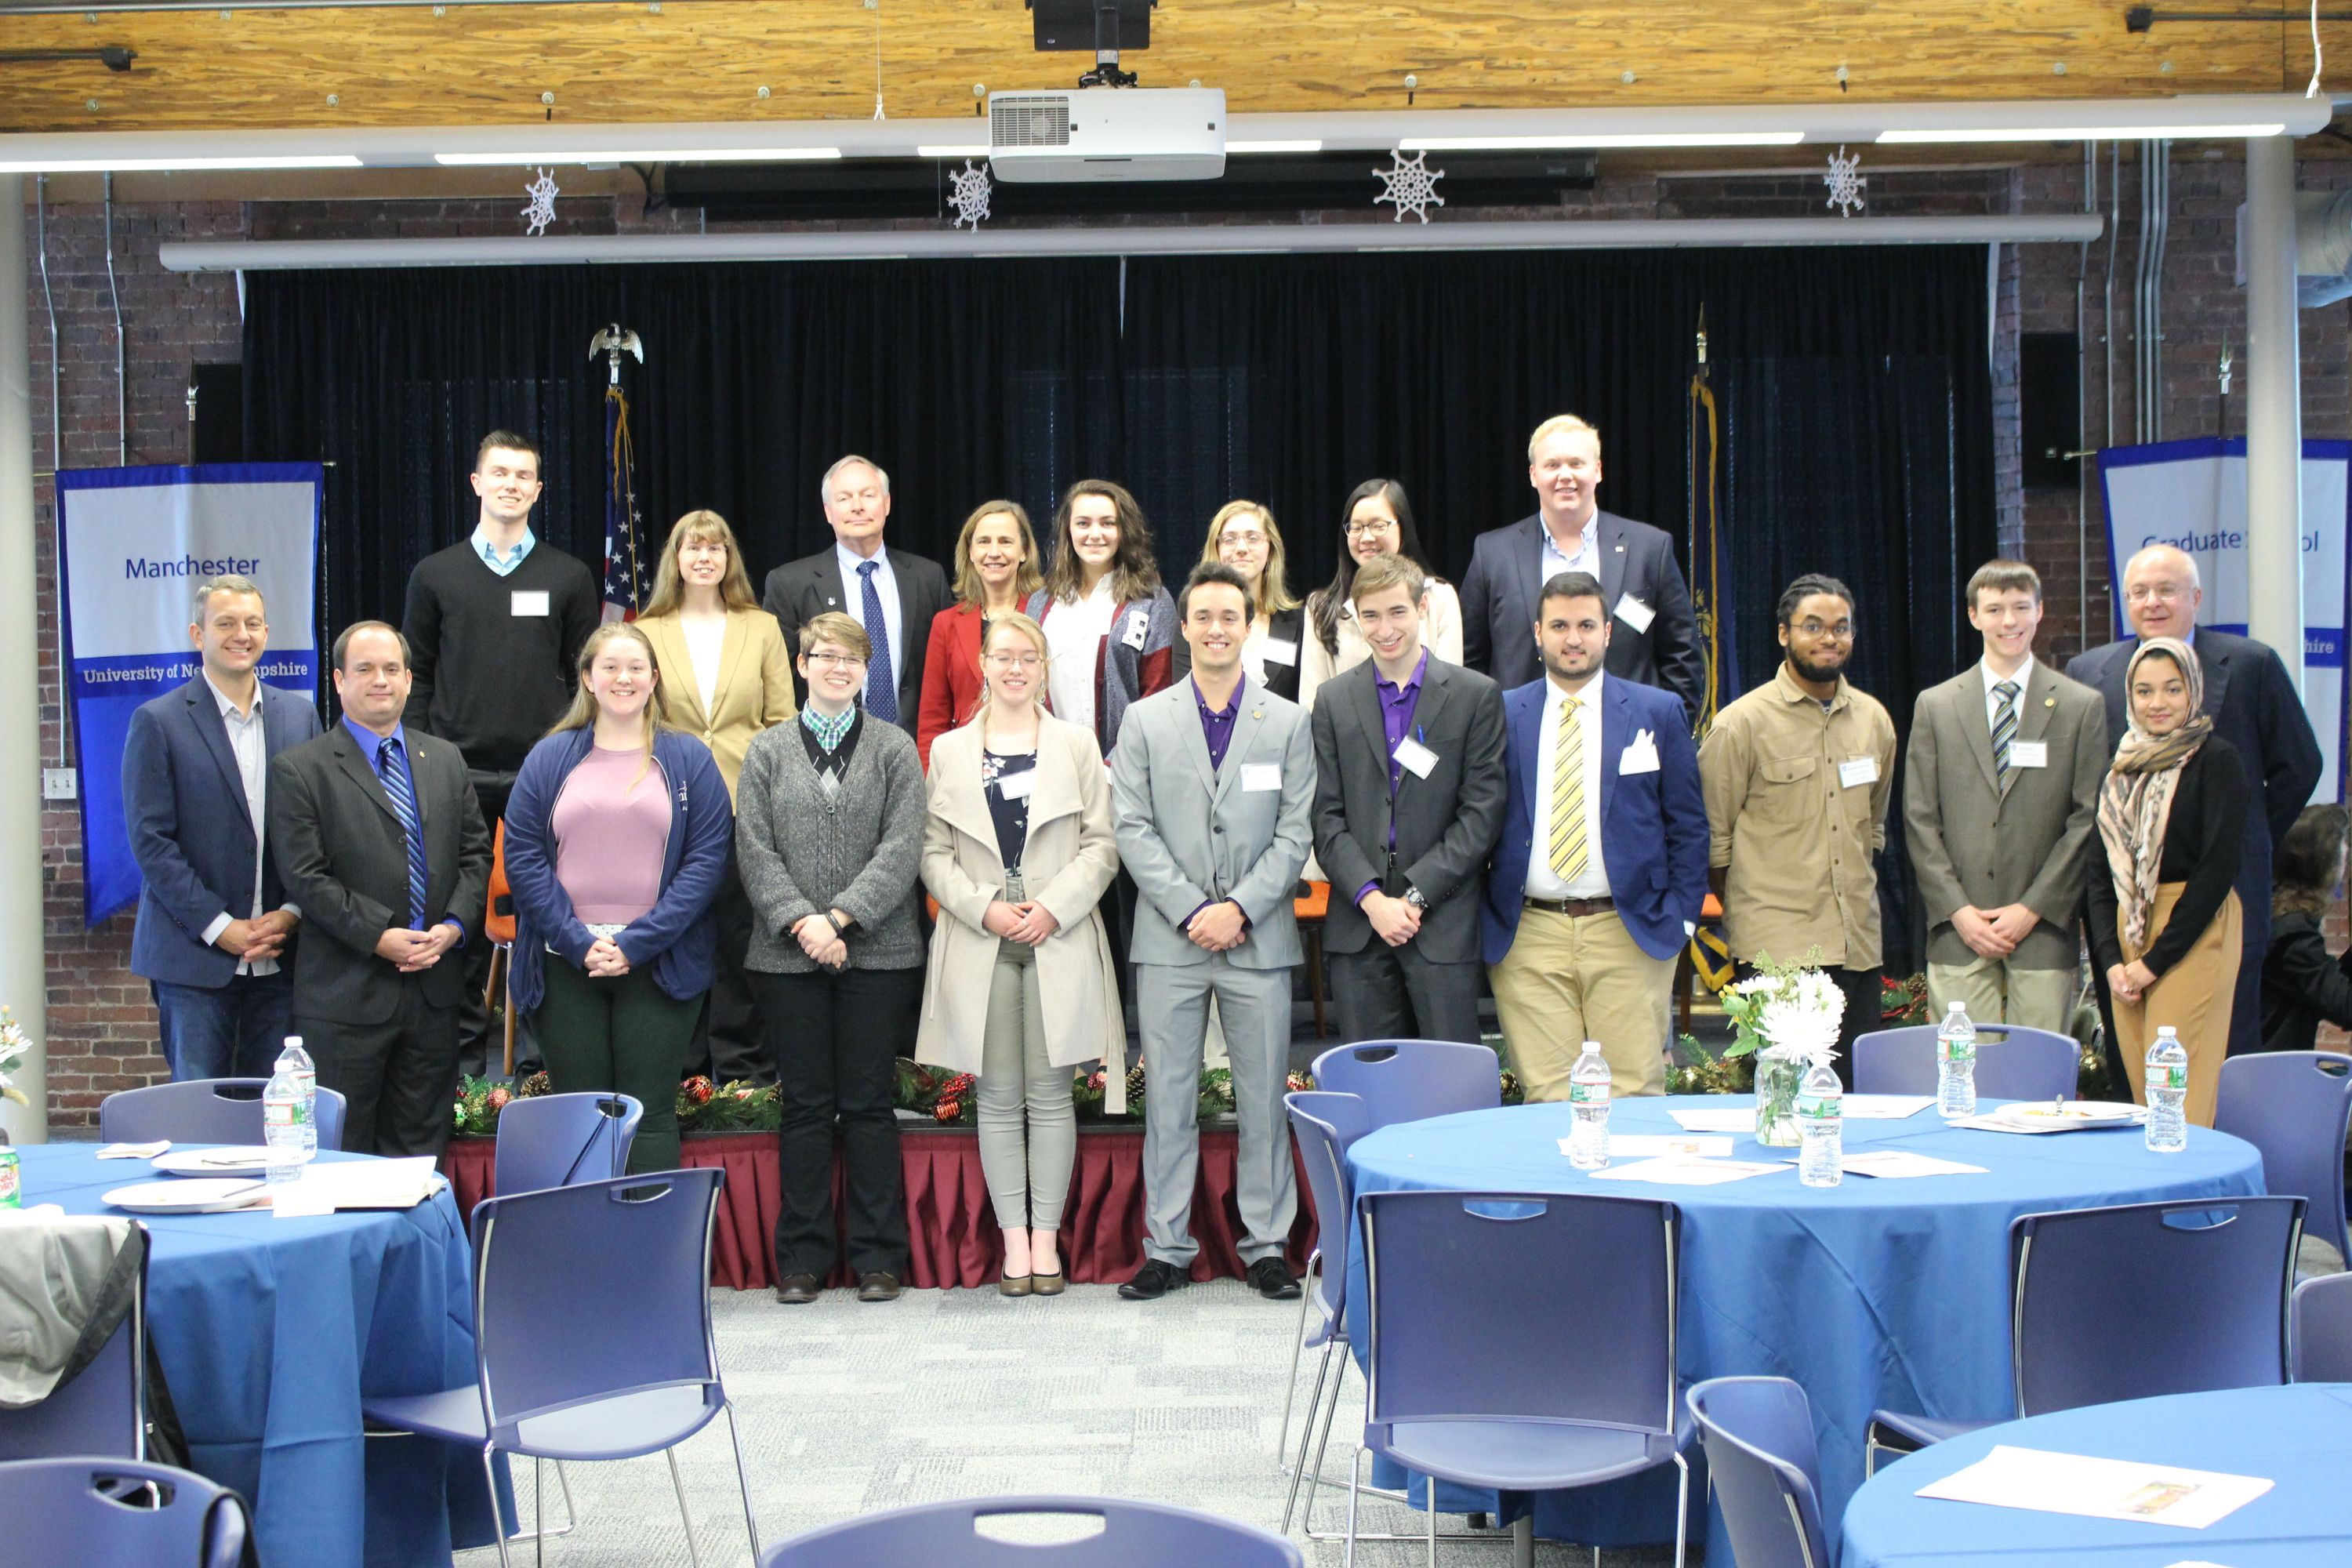 Hamel scholars, accompanied by invited guests, smile at the camera.